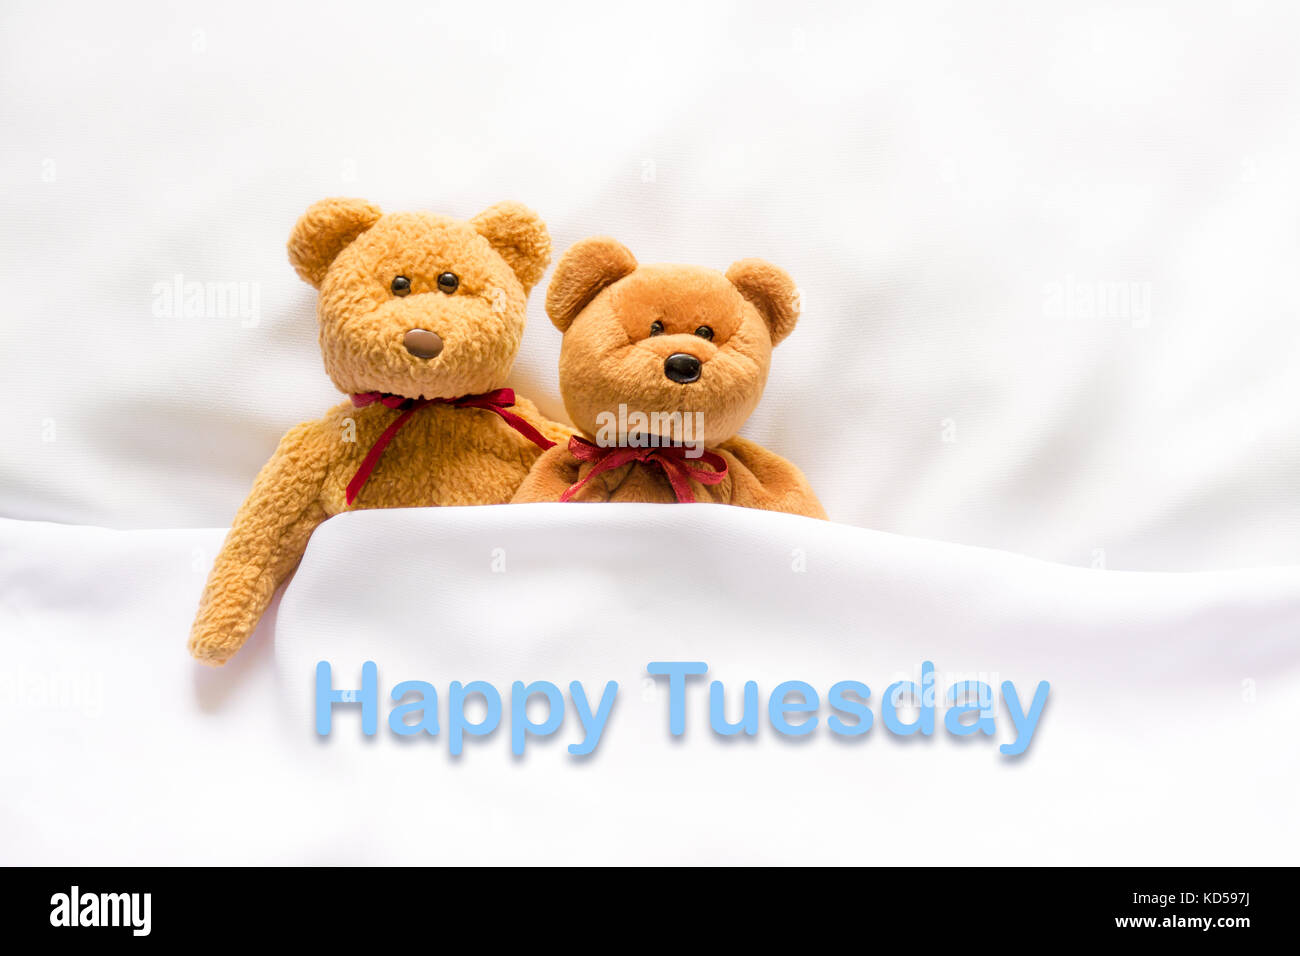 Teddy Bear Lying In The White Bed With Message Happy Thursday